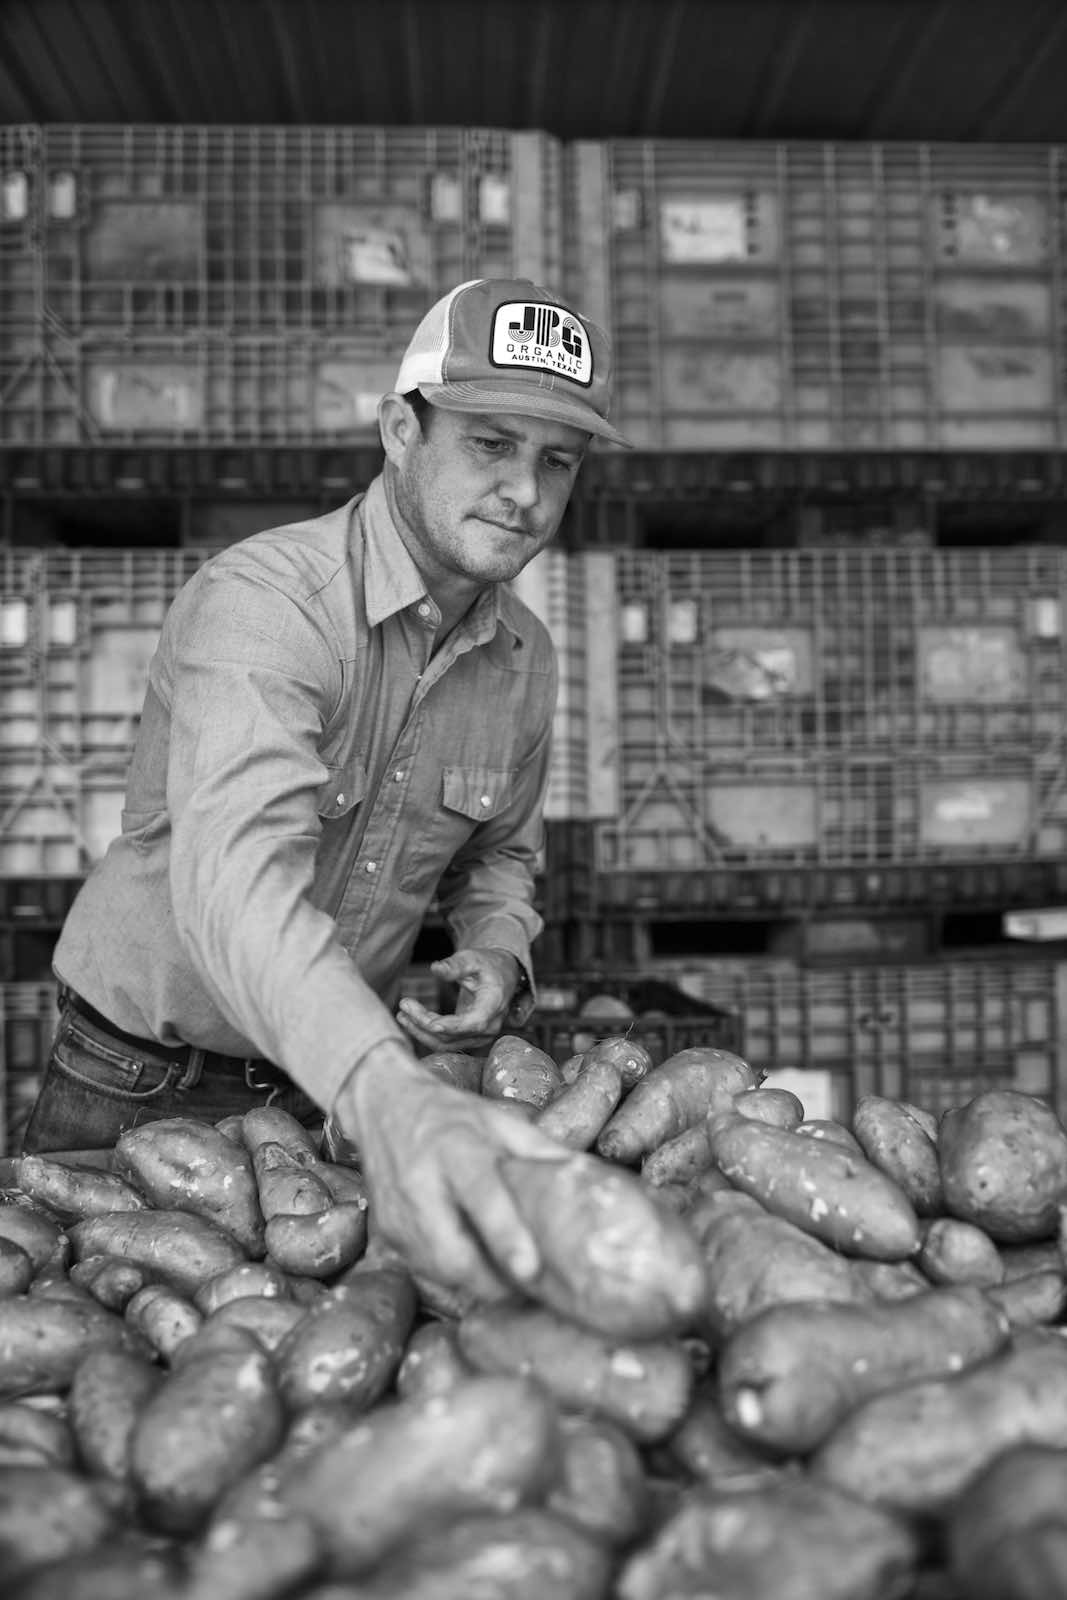 Jody Horton Photography - Farmer handling a haul of sweet potatoes, shot in B&W.